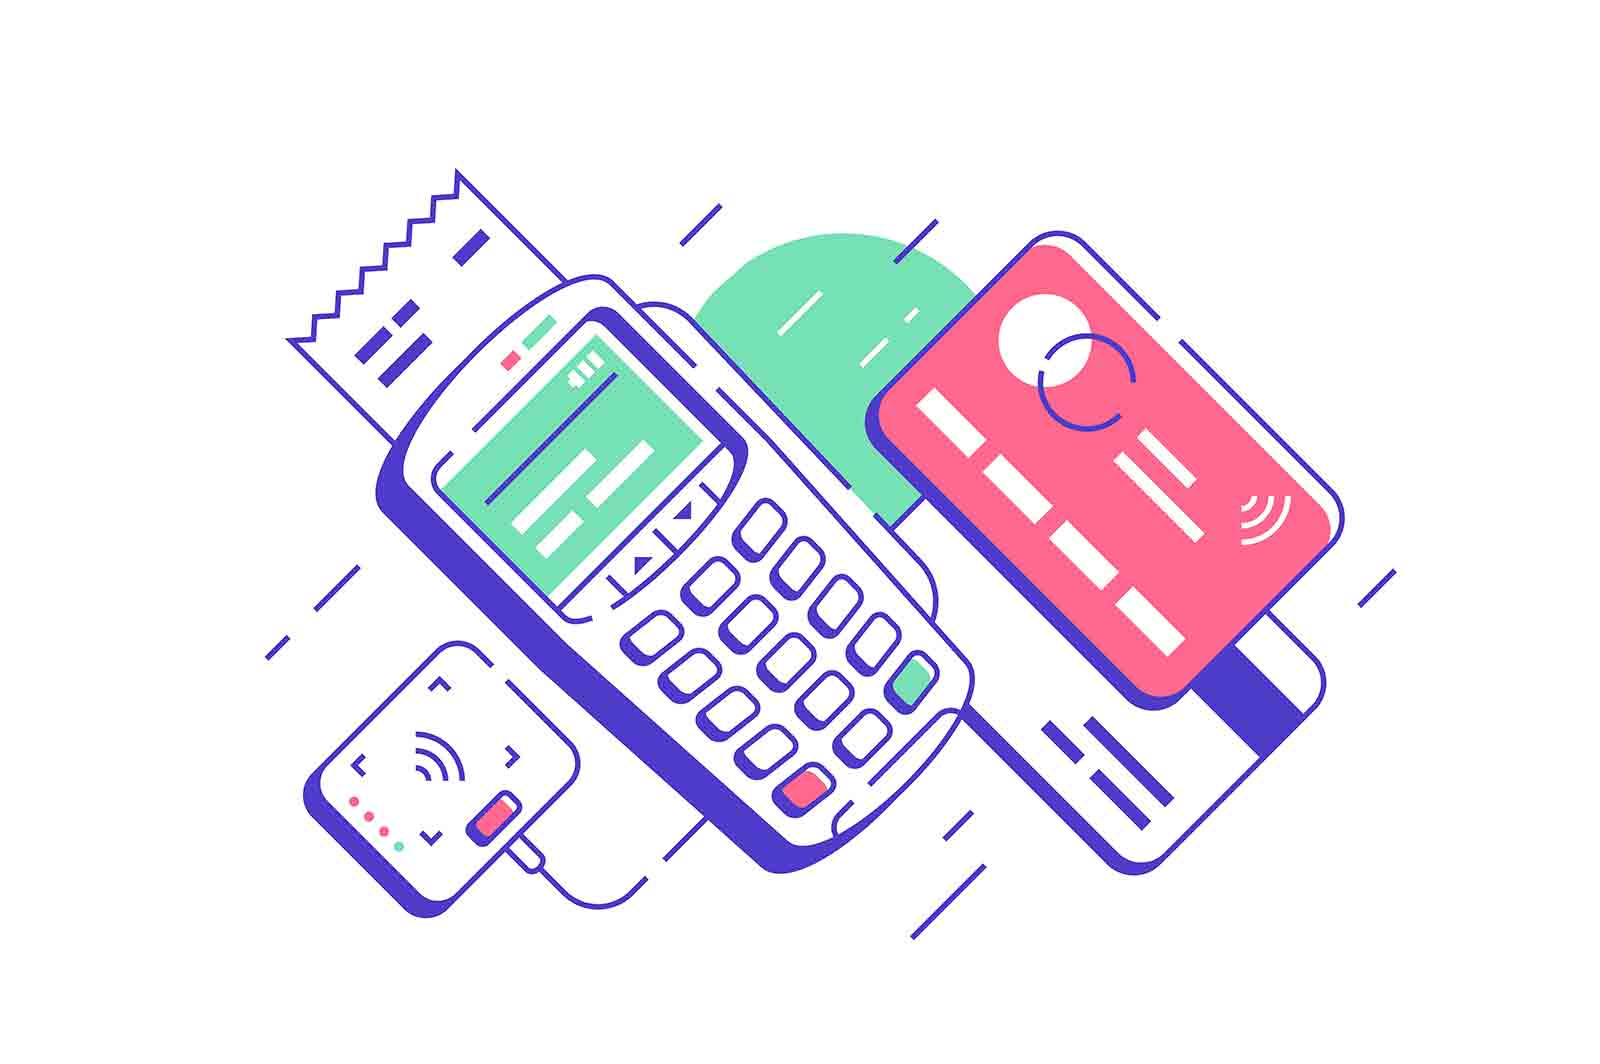 Modern urban terminal for contactless and wireless goods payment. Isolated concept of device for card pay service and bank payment in market with buyer check. Vector illustration.